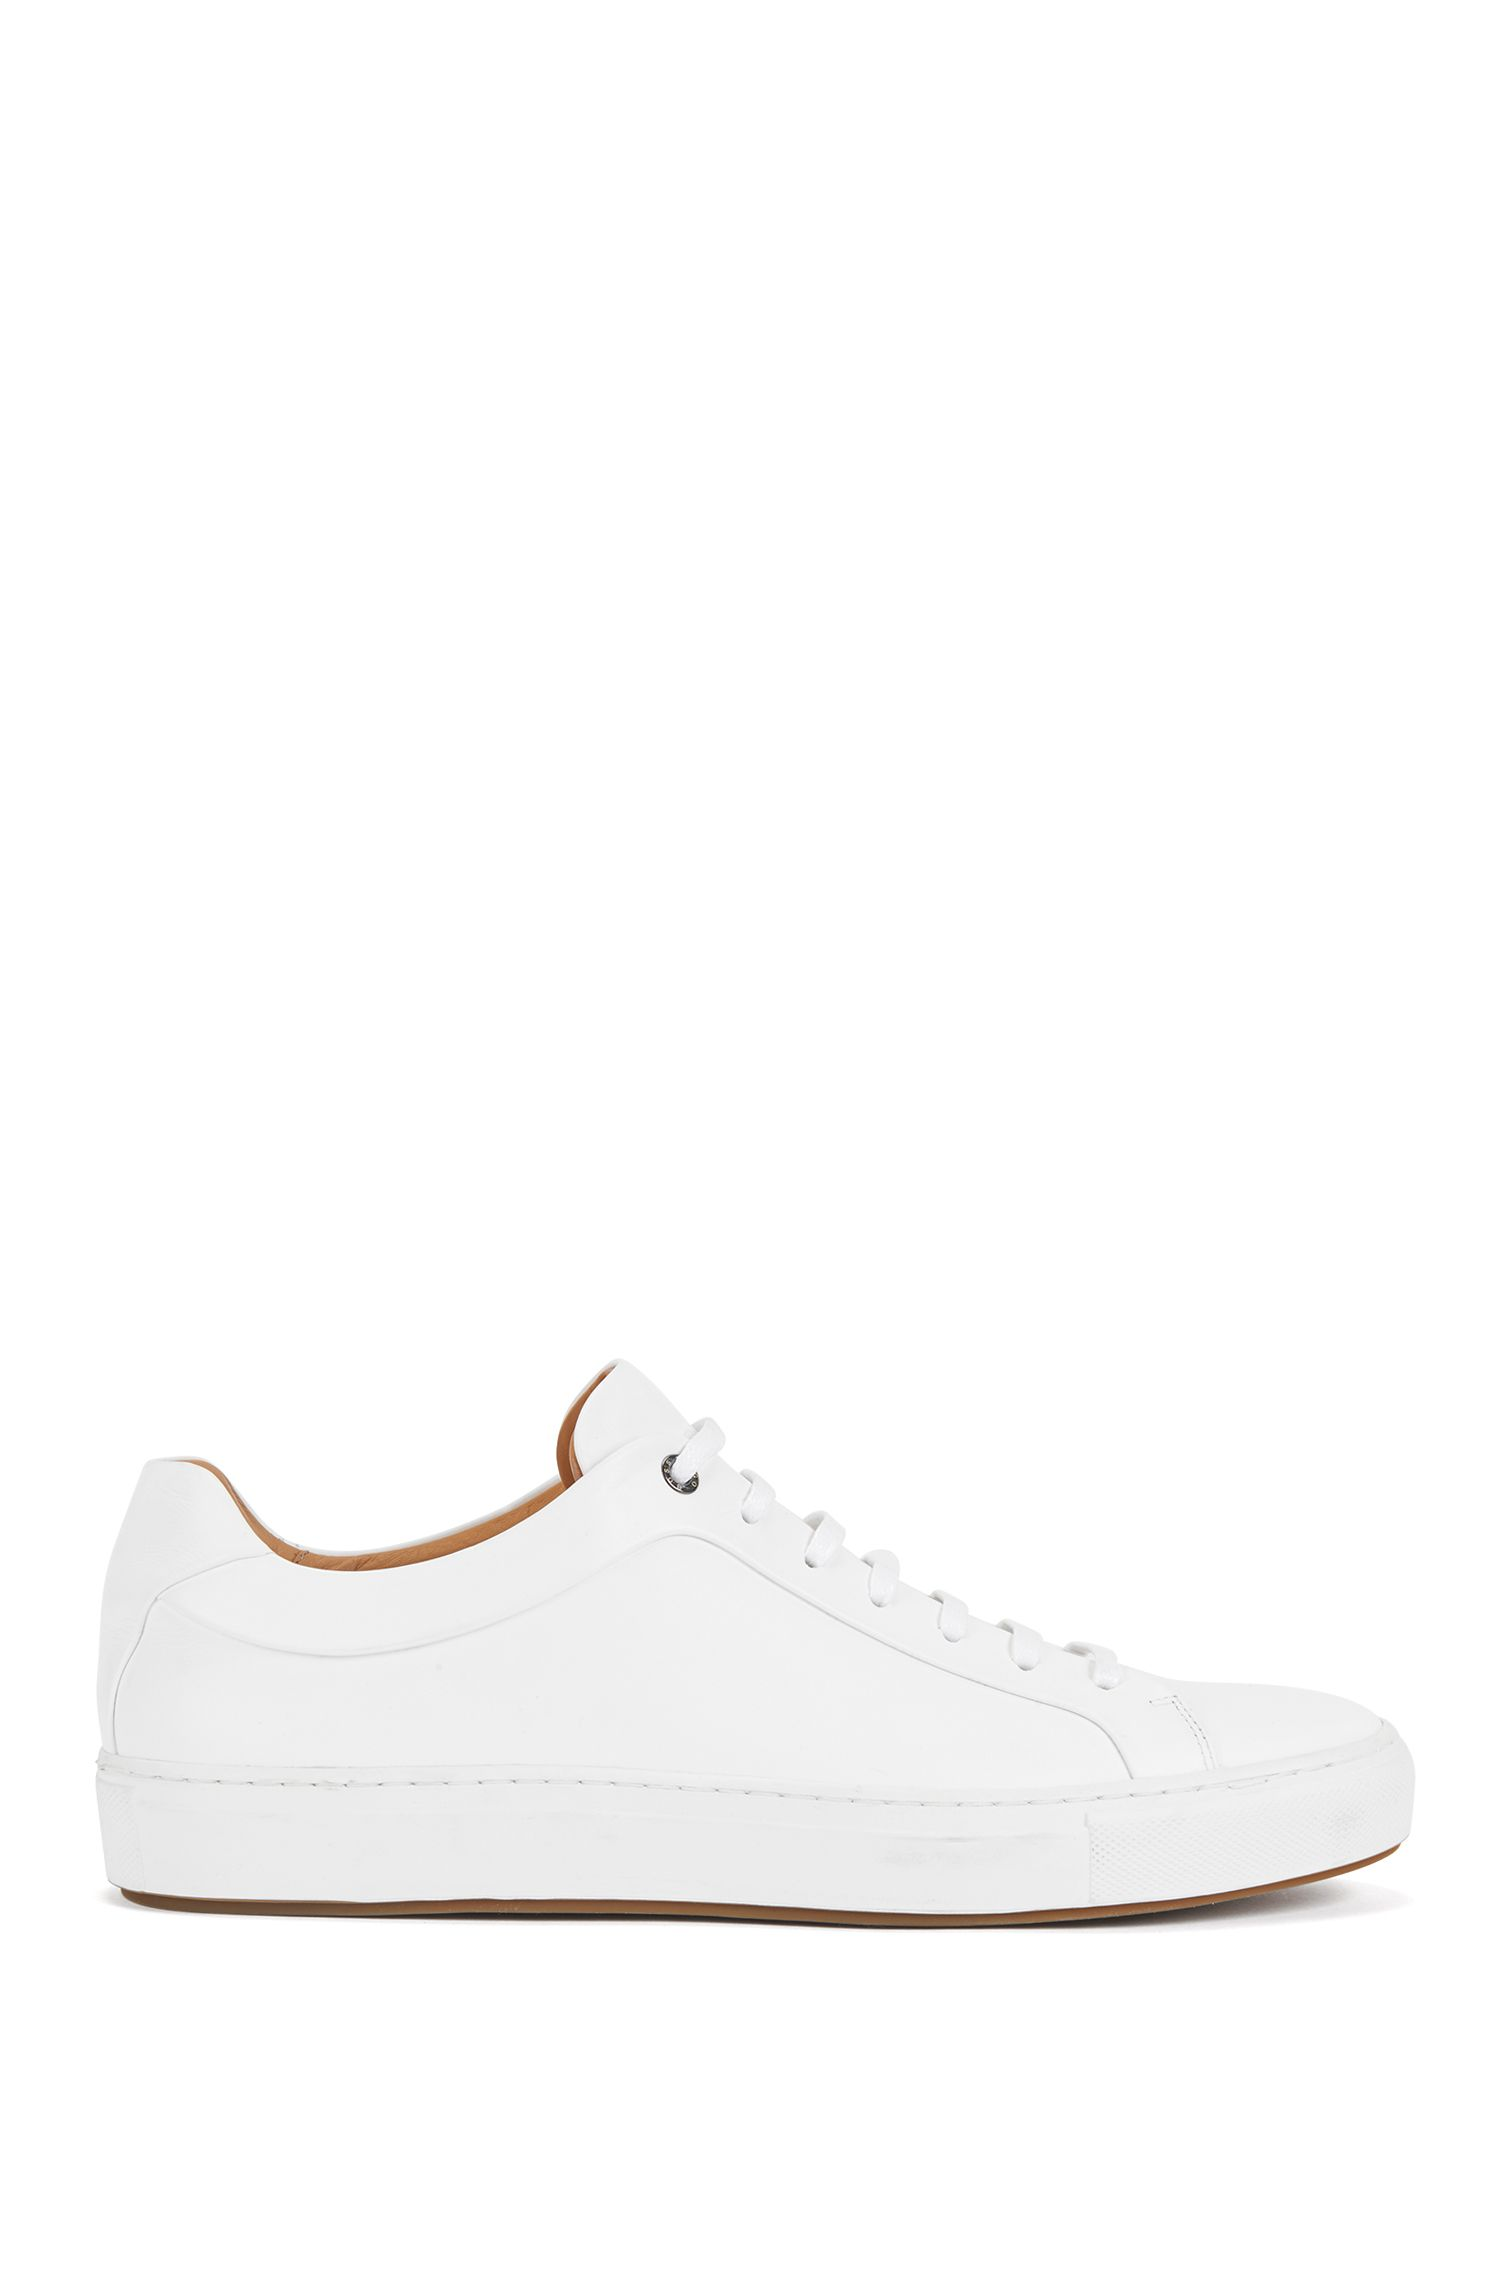 Tennis-style sneakers in burnished leather, White